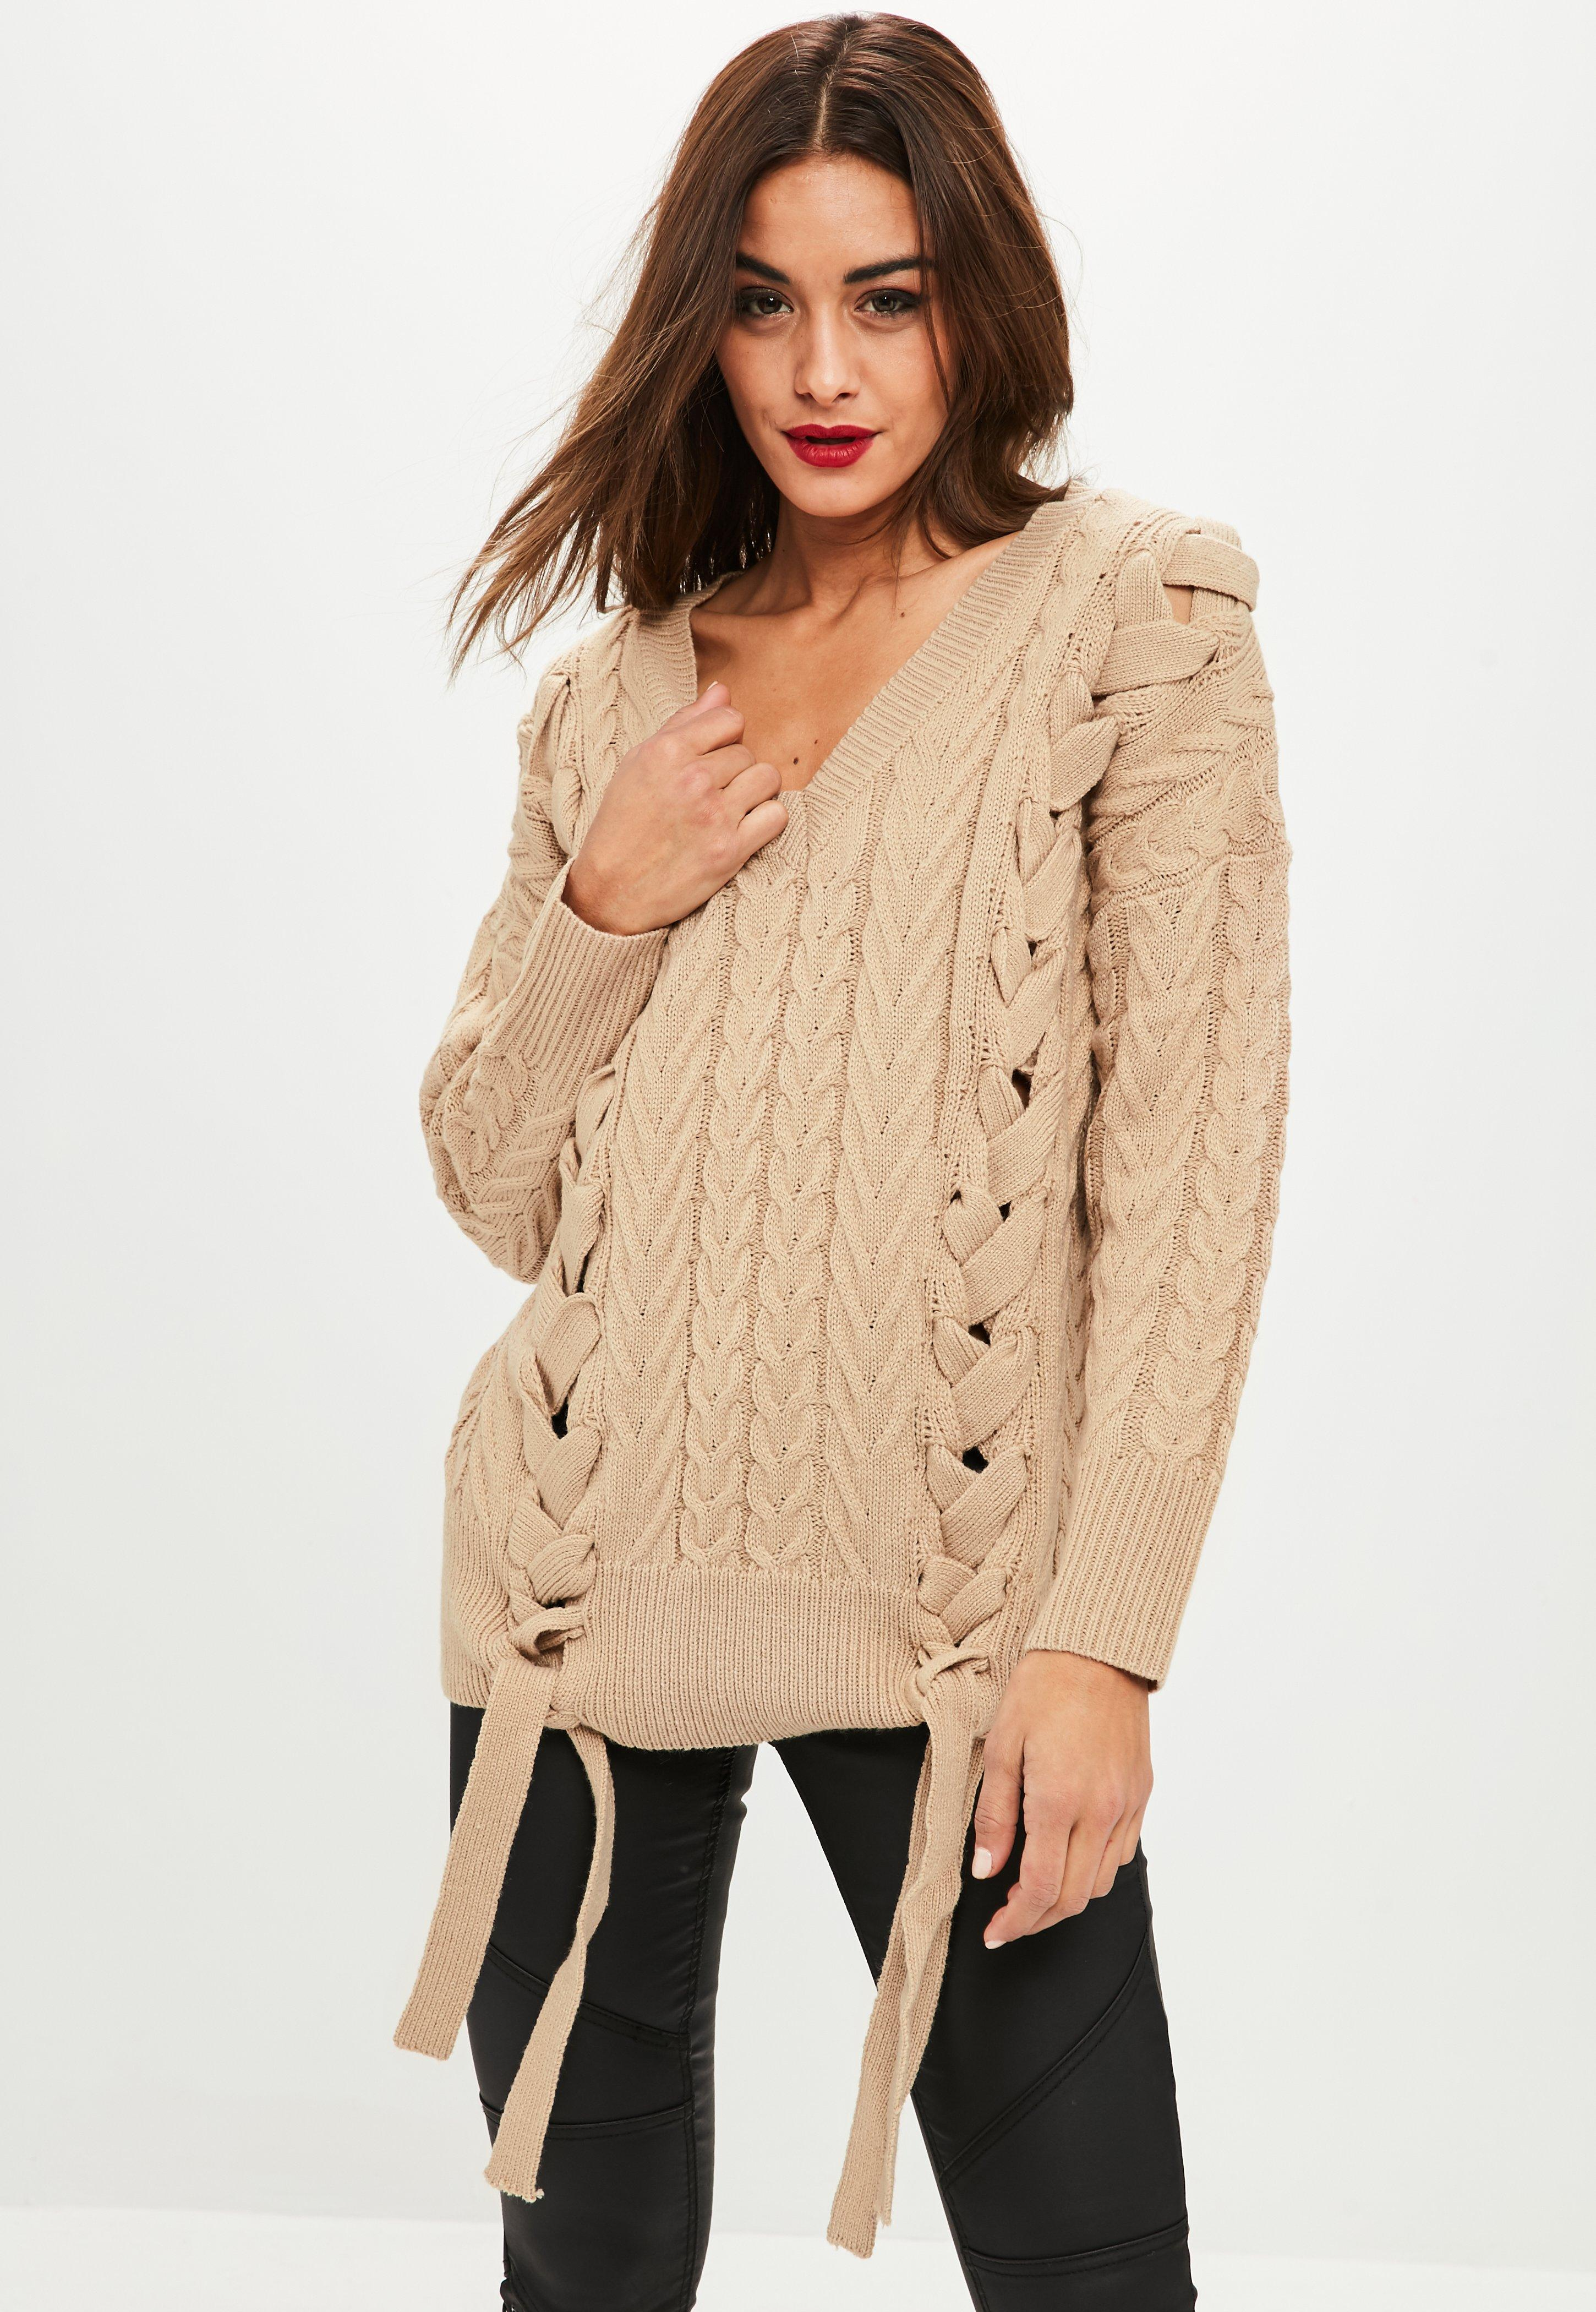 Stone Oversized Lace Up Detail Sweater | Missguided